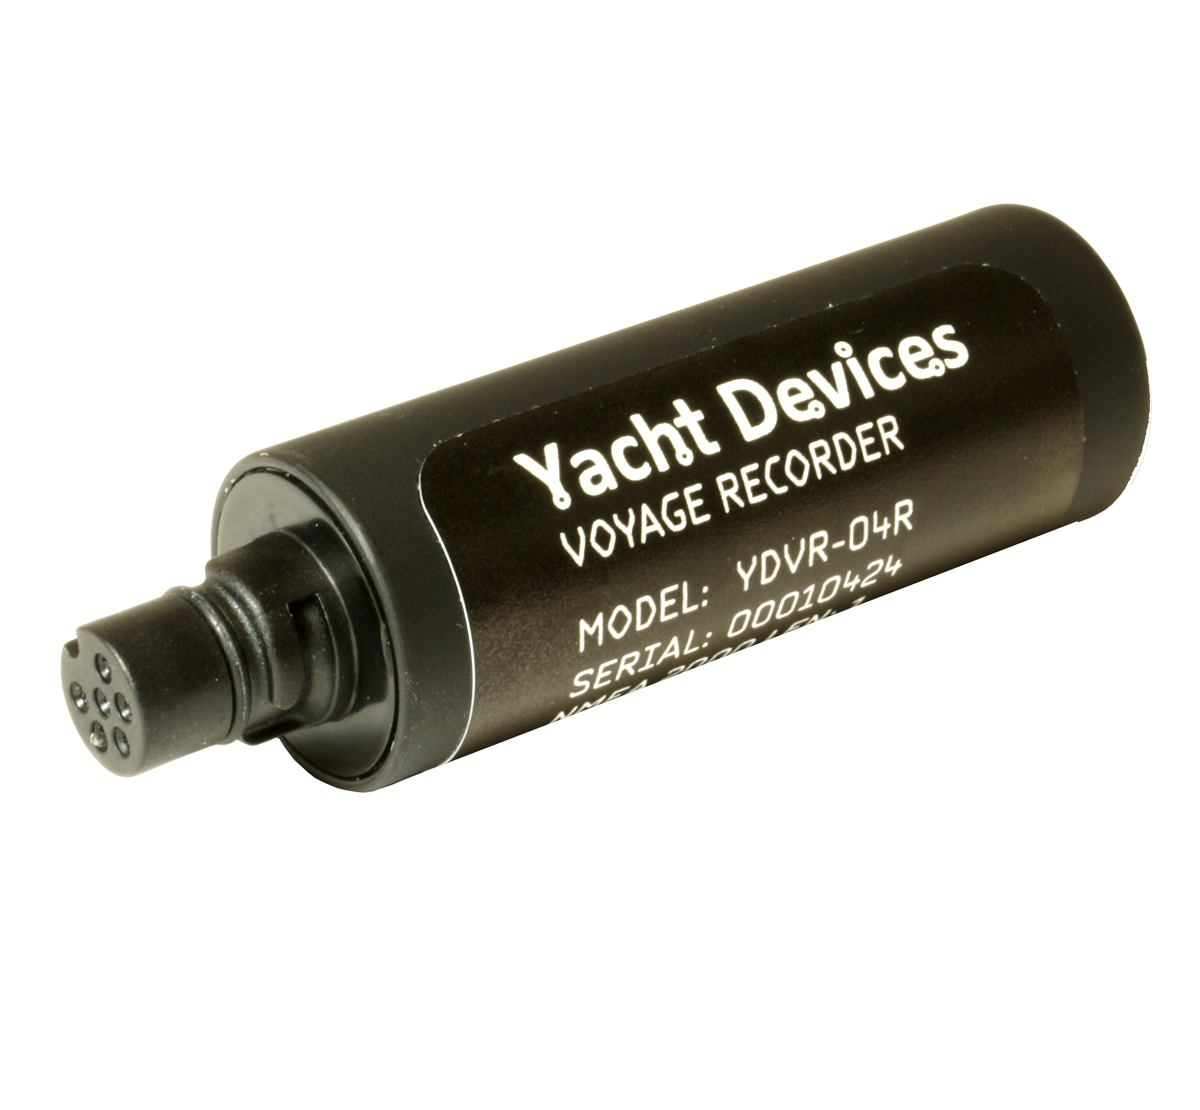 Yacht Devices Voyage Recorder SeaTalk NG YDVR-04R